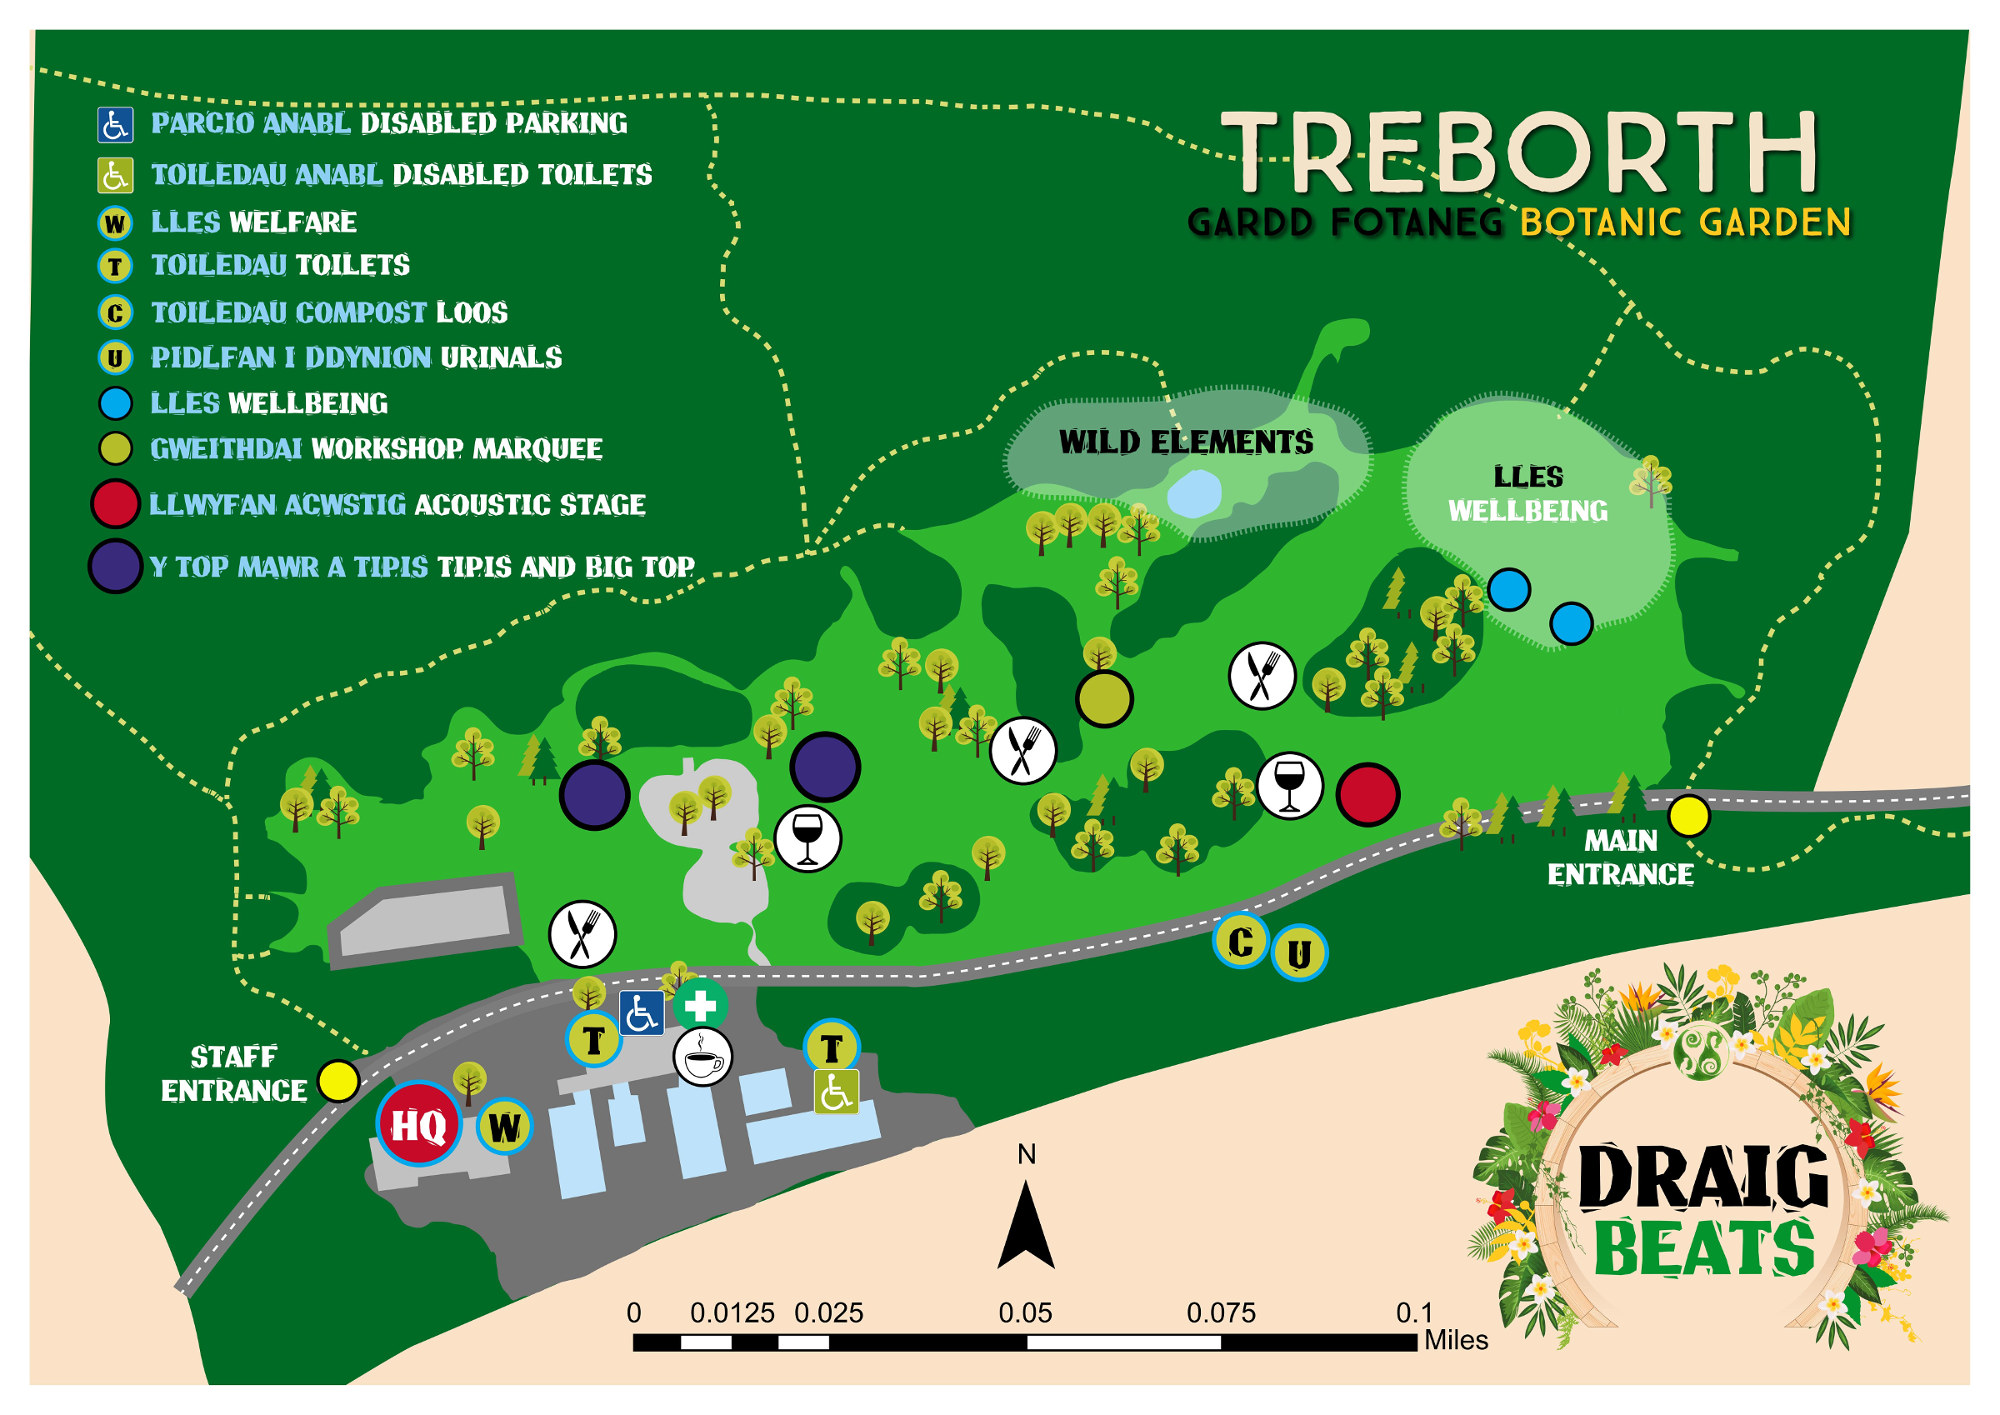 The site map